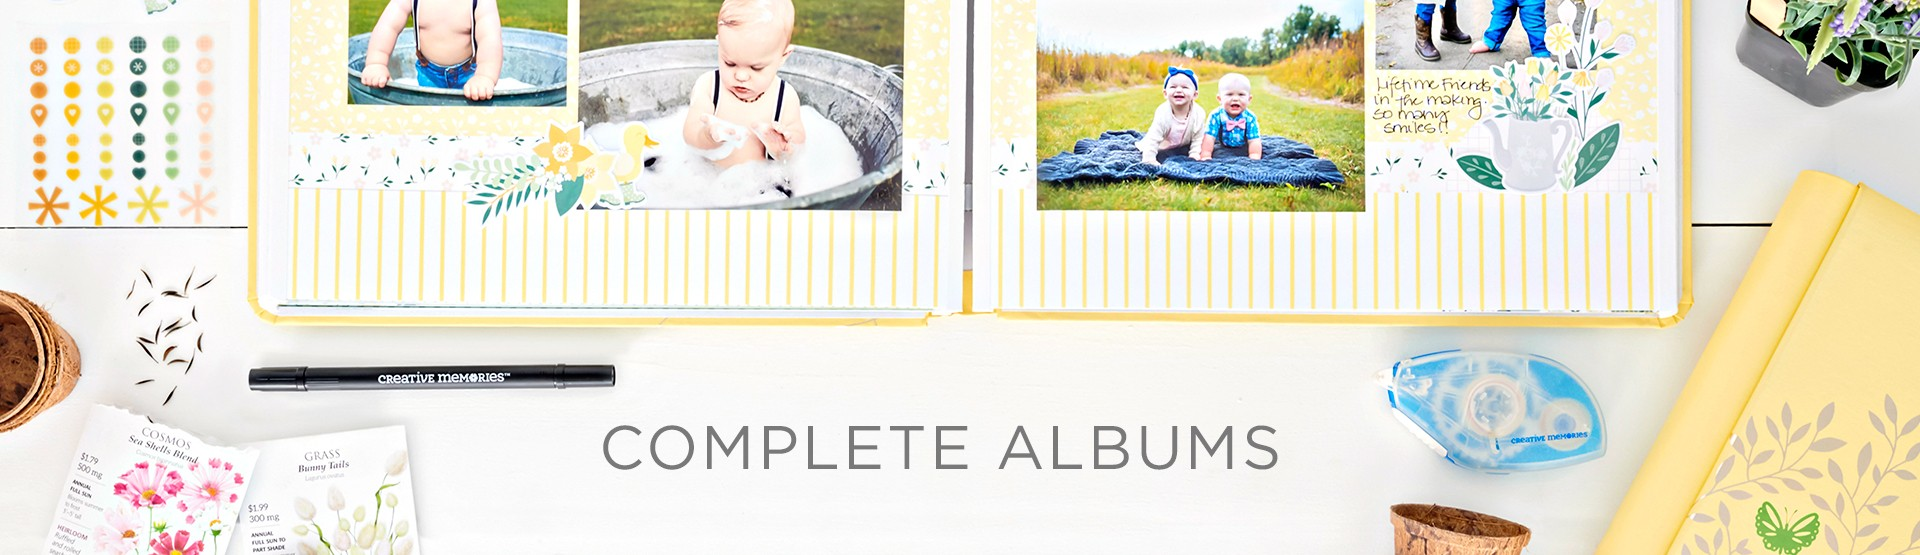 Complete Albums